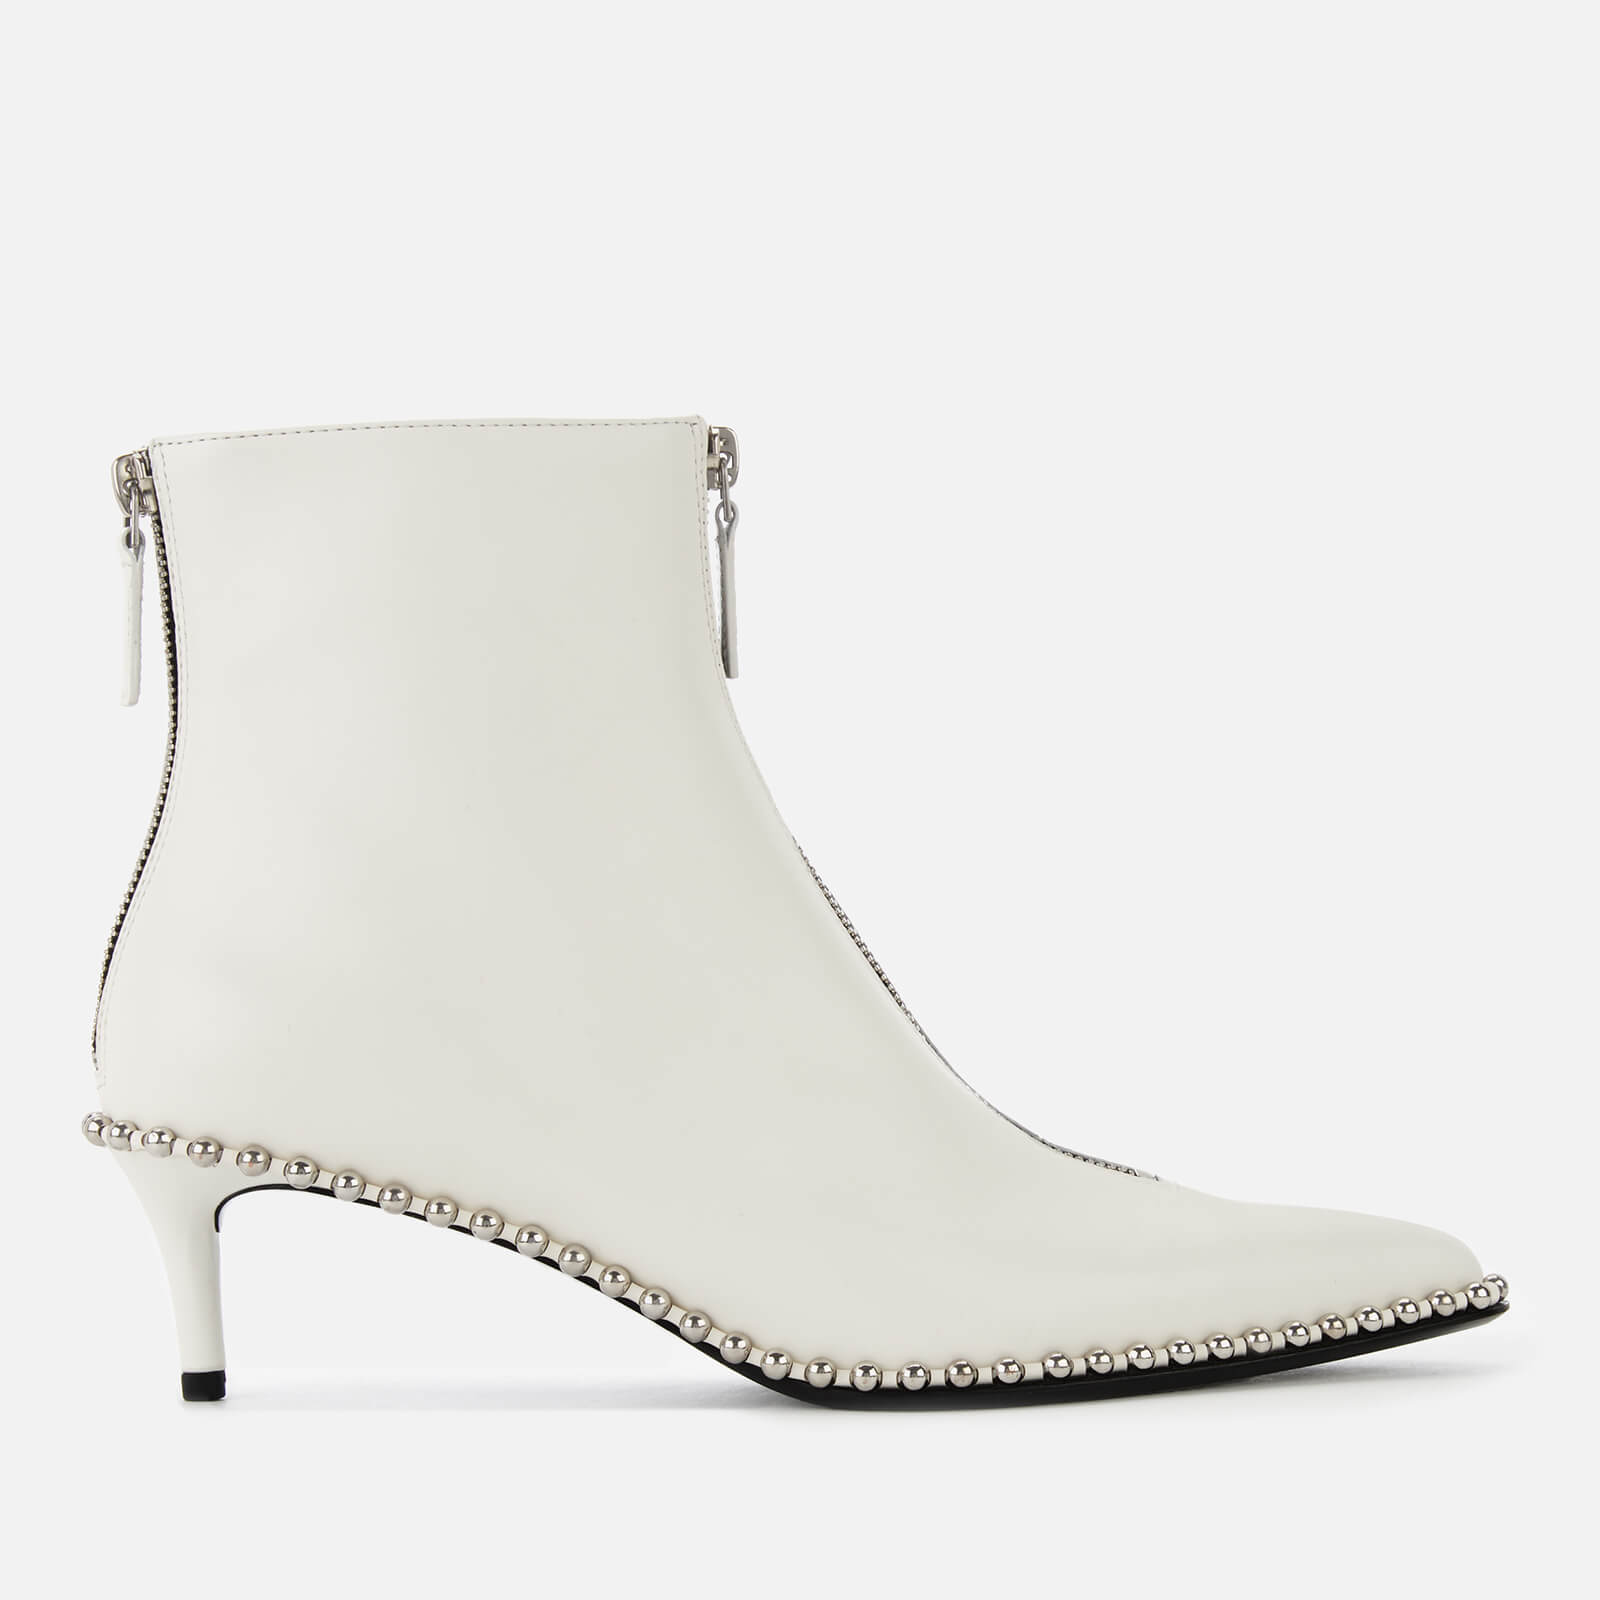 6516f866646 Alexander Wang Women s Eri Low Heel Leather Ankle Boots - White - Free UK  Delivery over £50